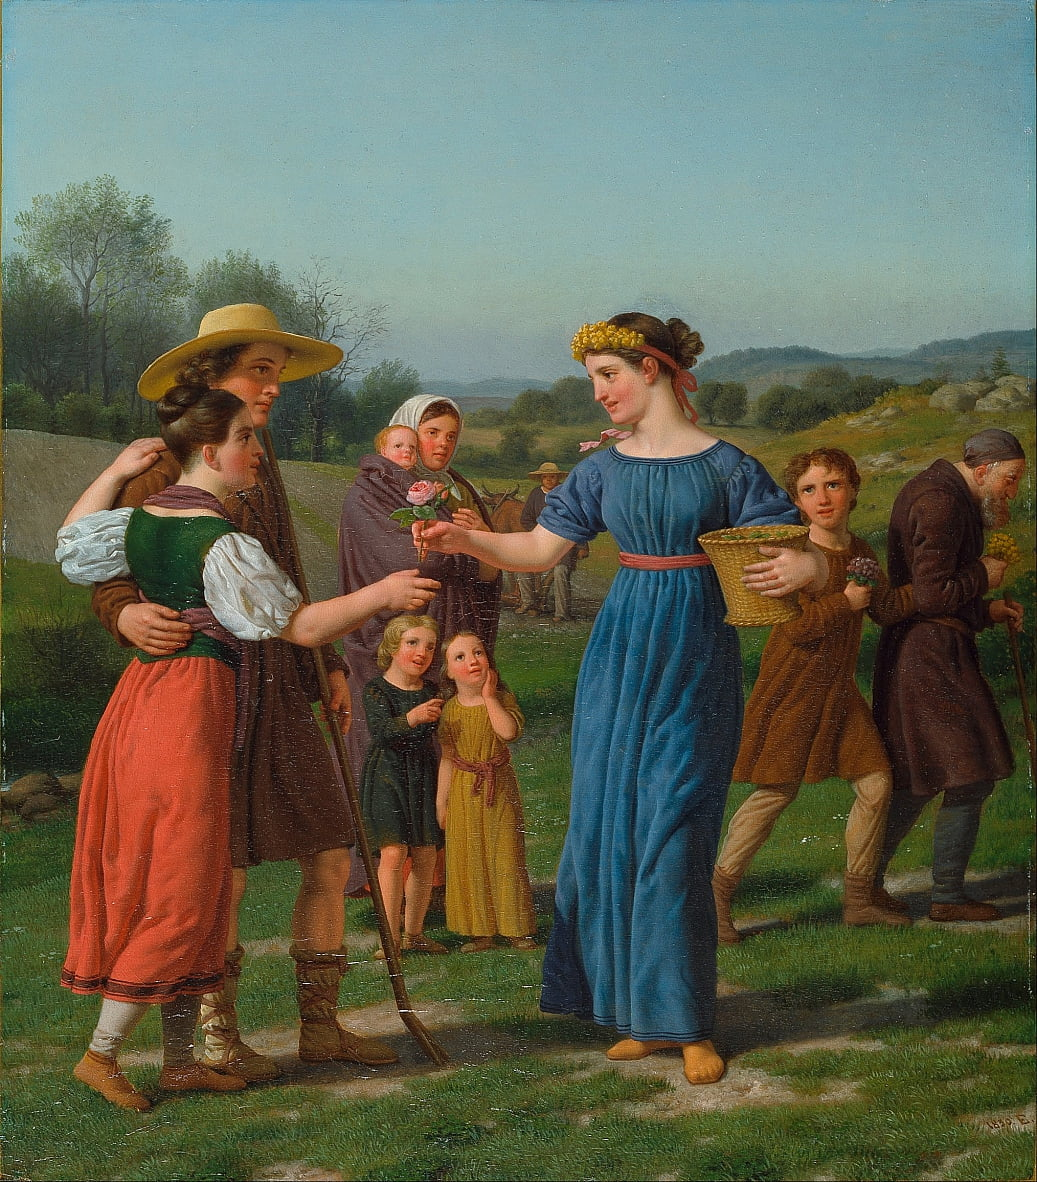 The Maiden from Afar Del poema de Schiller de Christoffer Wilhelm Eckersberg